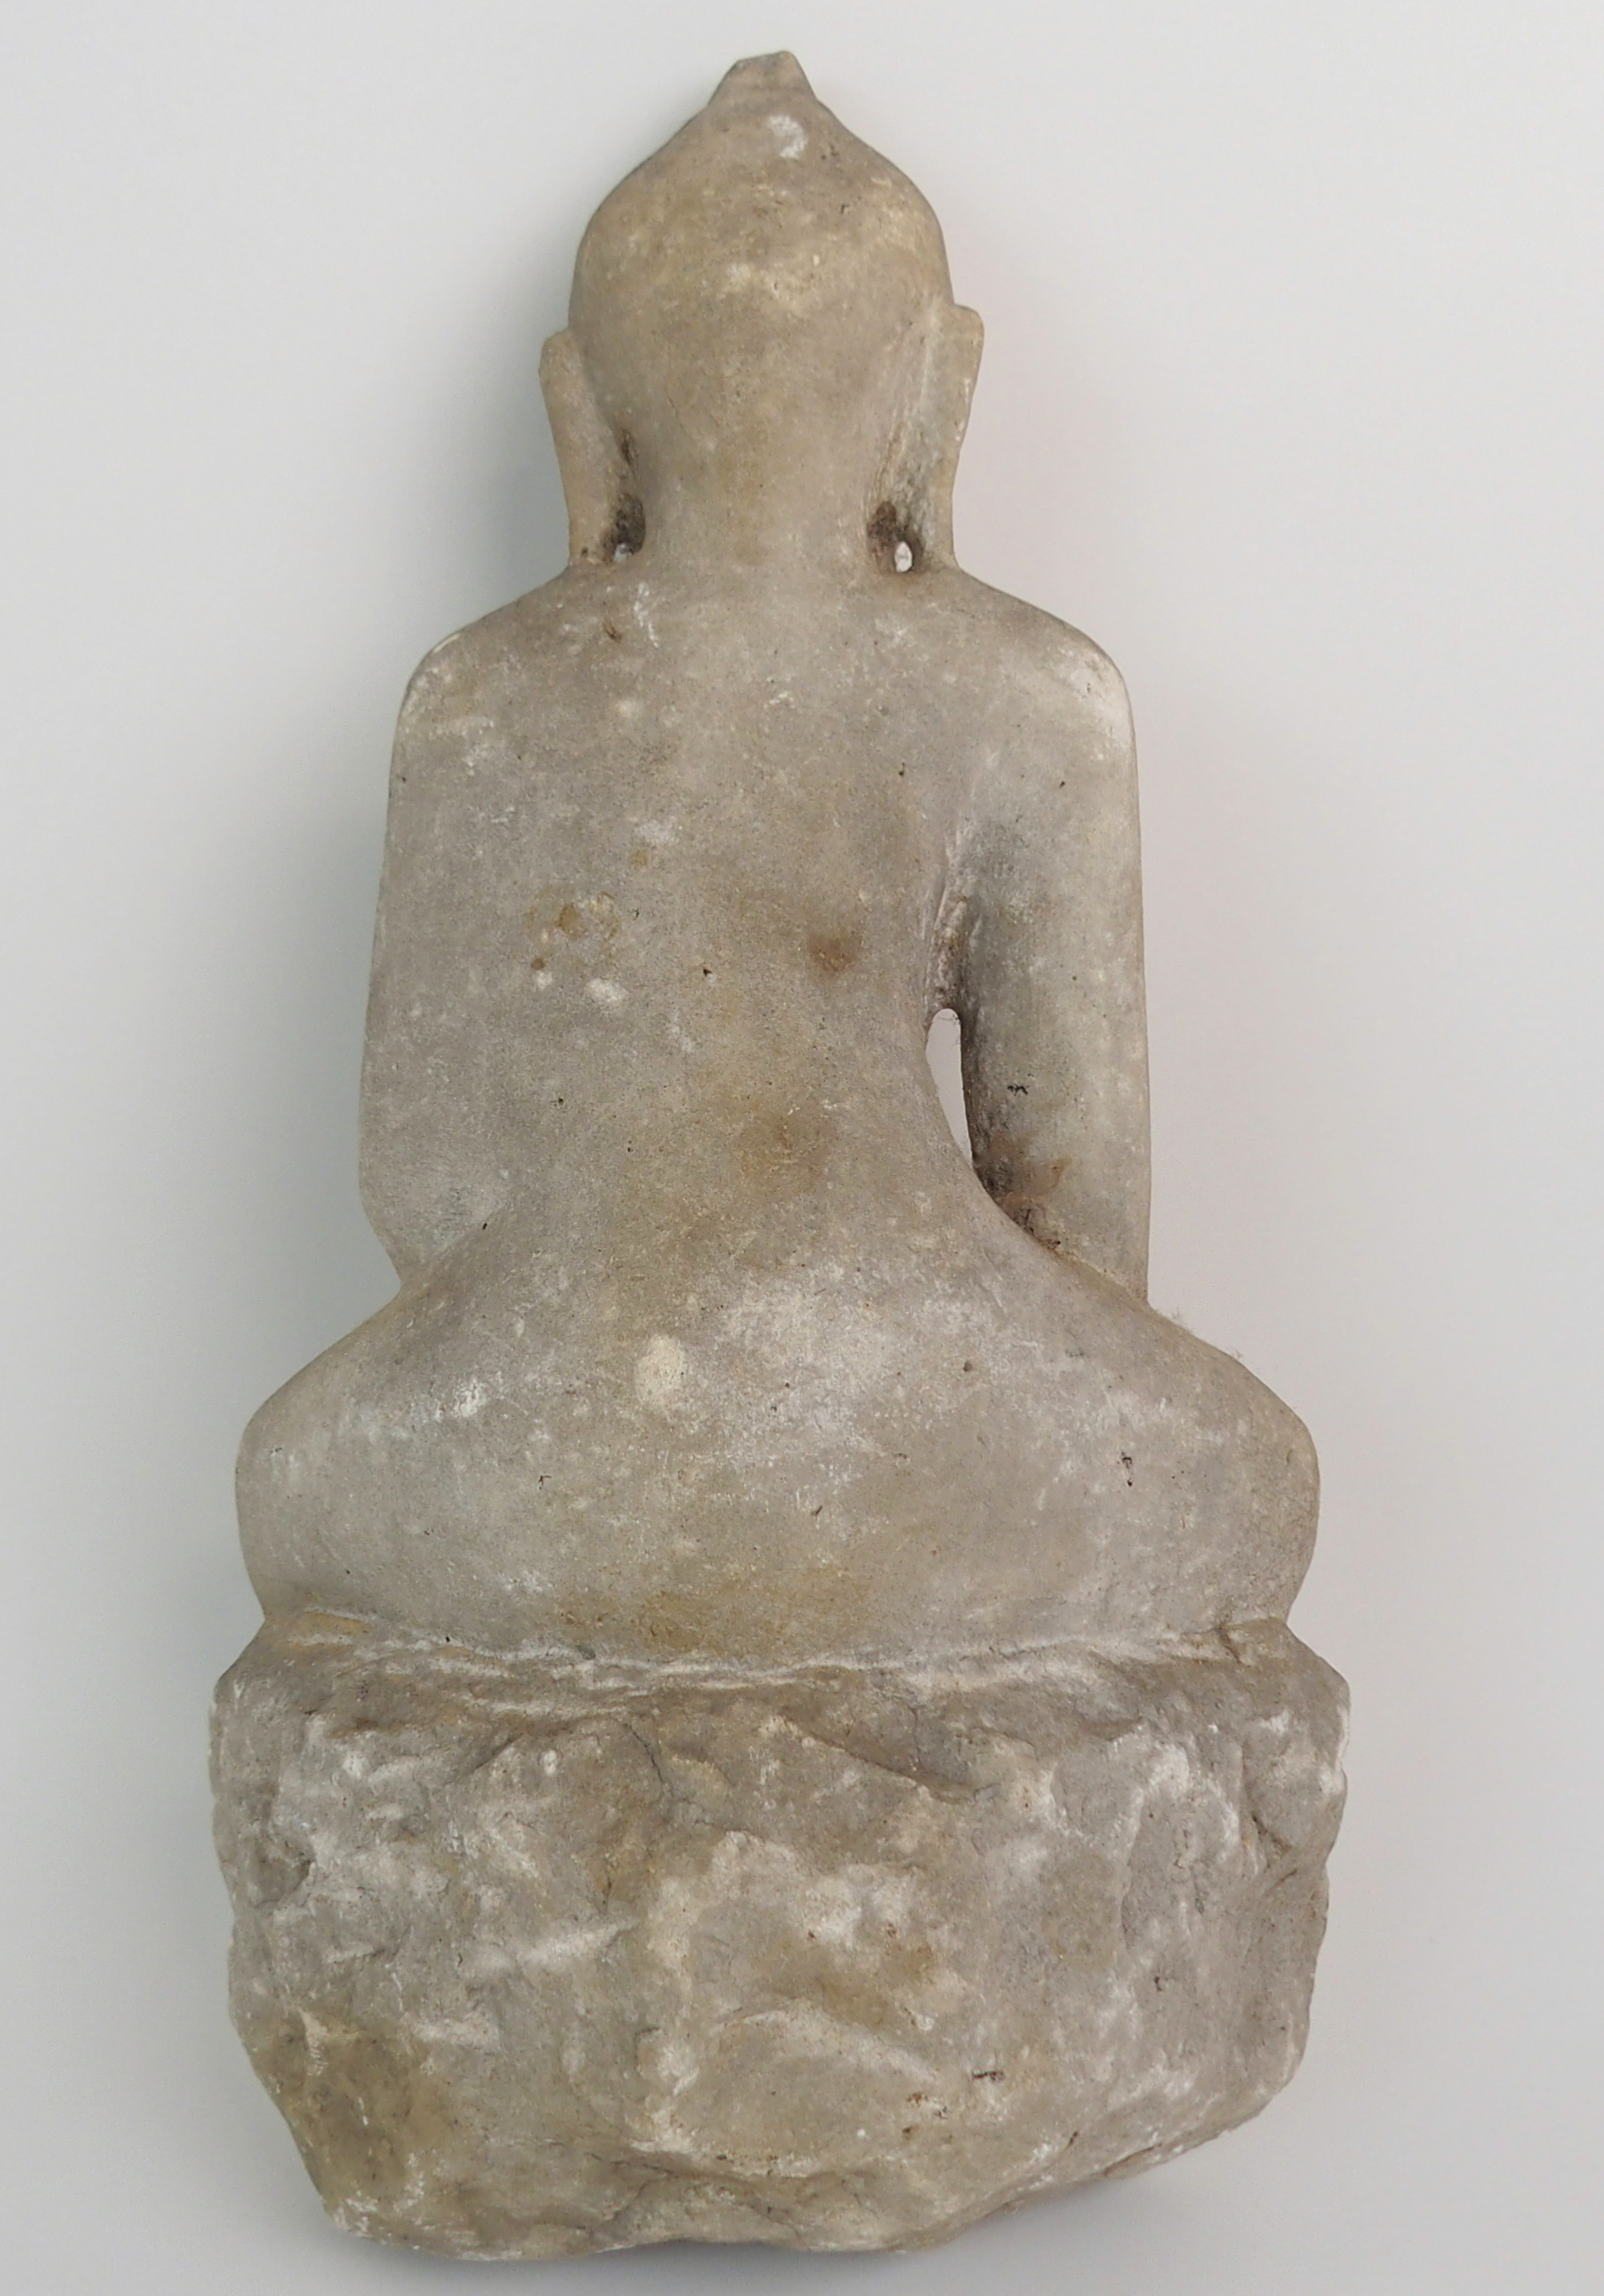 Lot 26 - AN INDIAN WHITE MARBLE STATUE OF BUDDHA seated in lotus position on a high raised lotus throne, 39cm